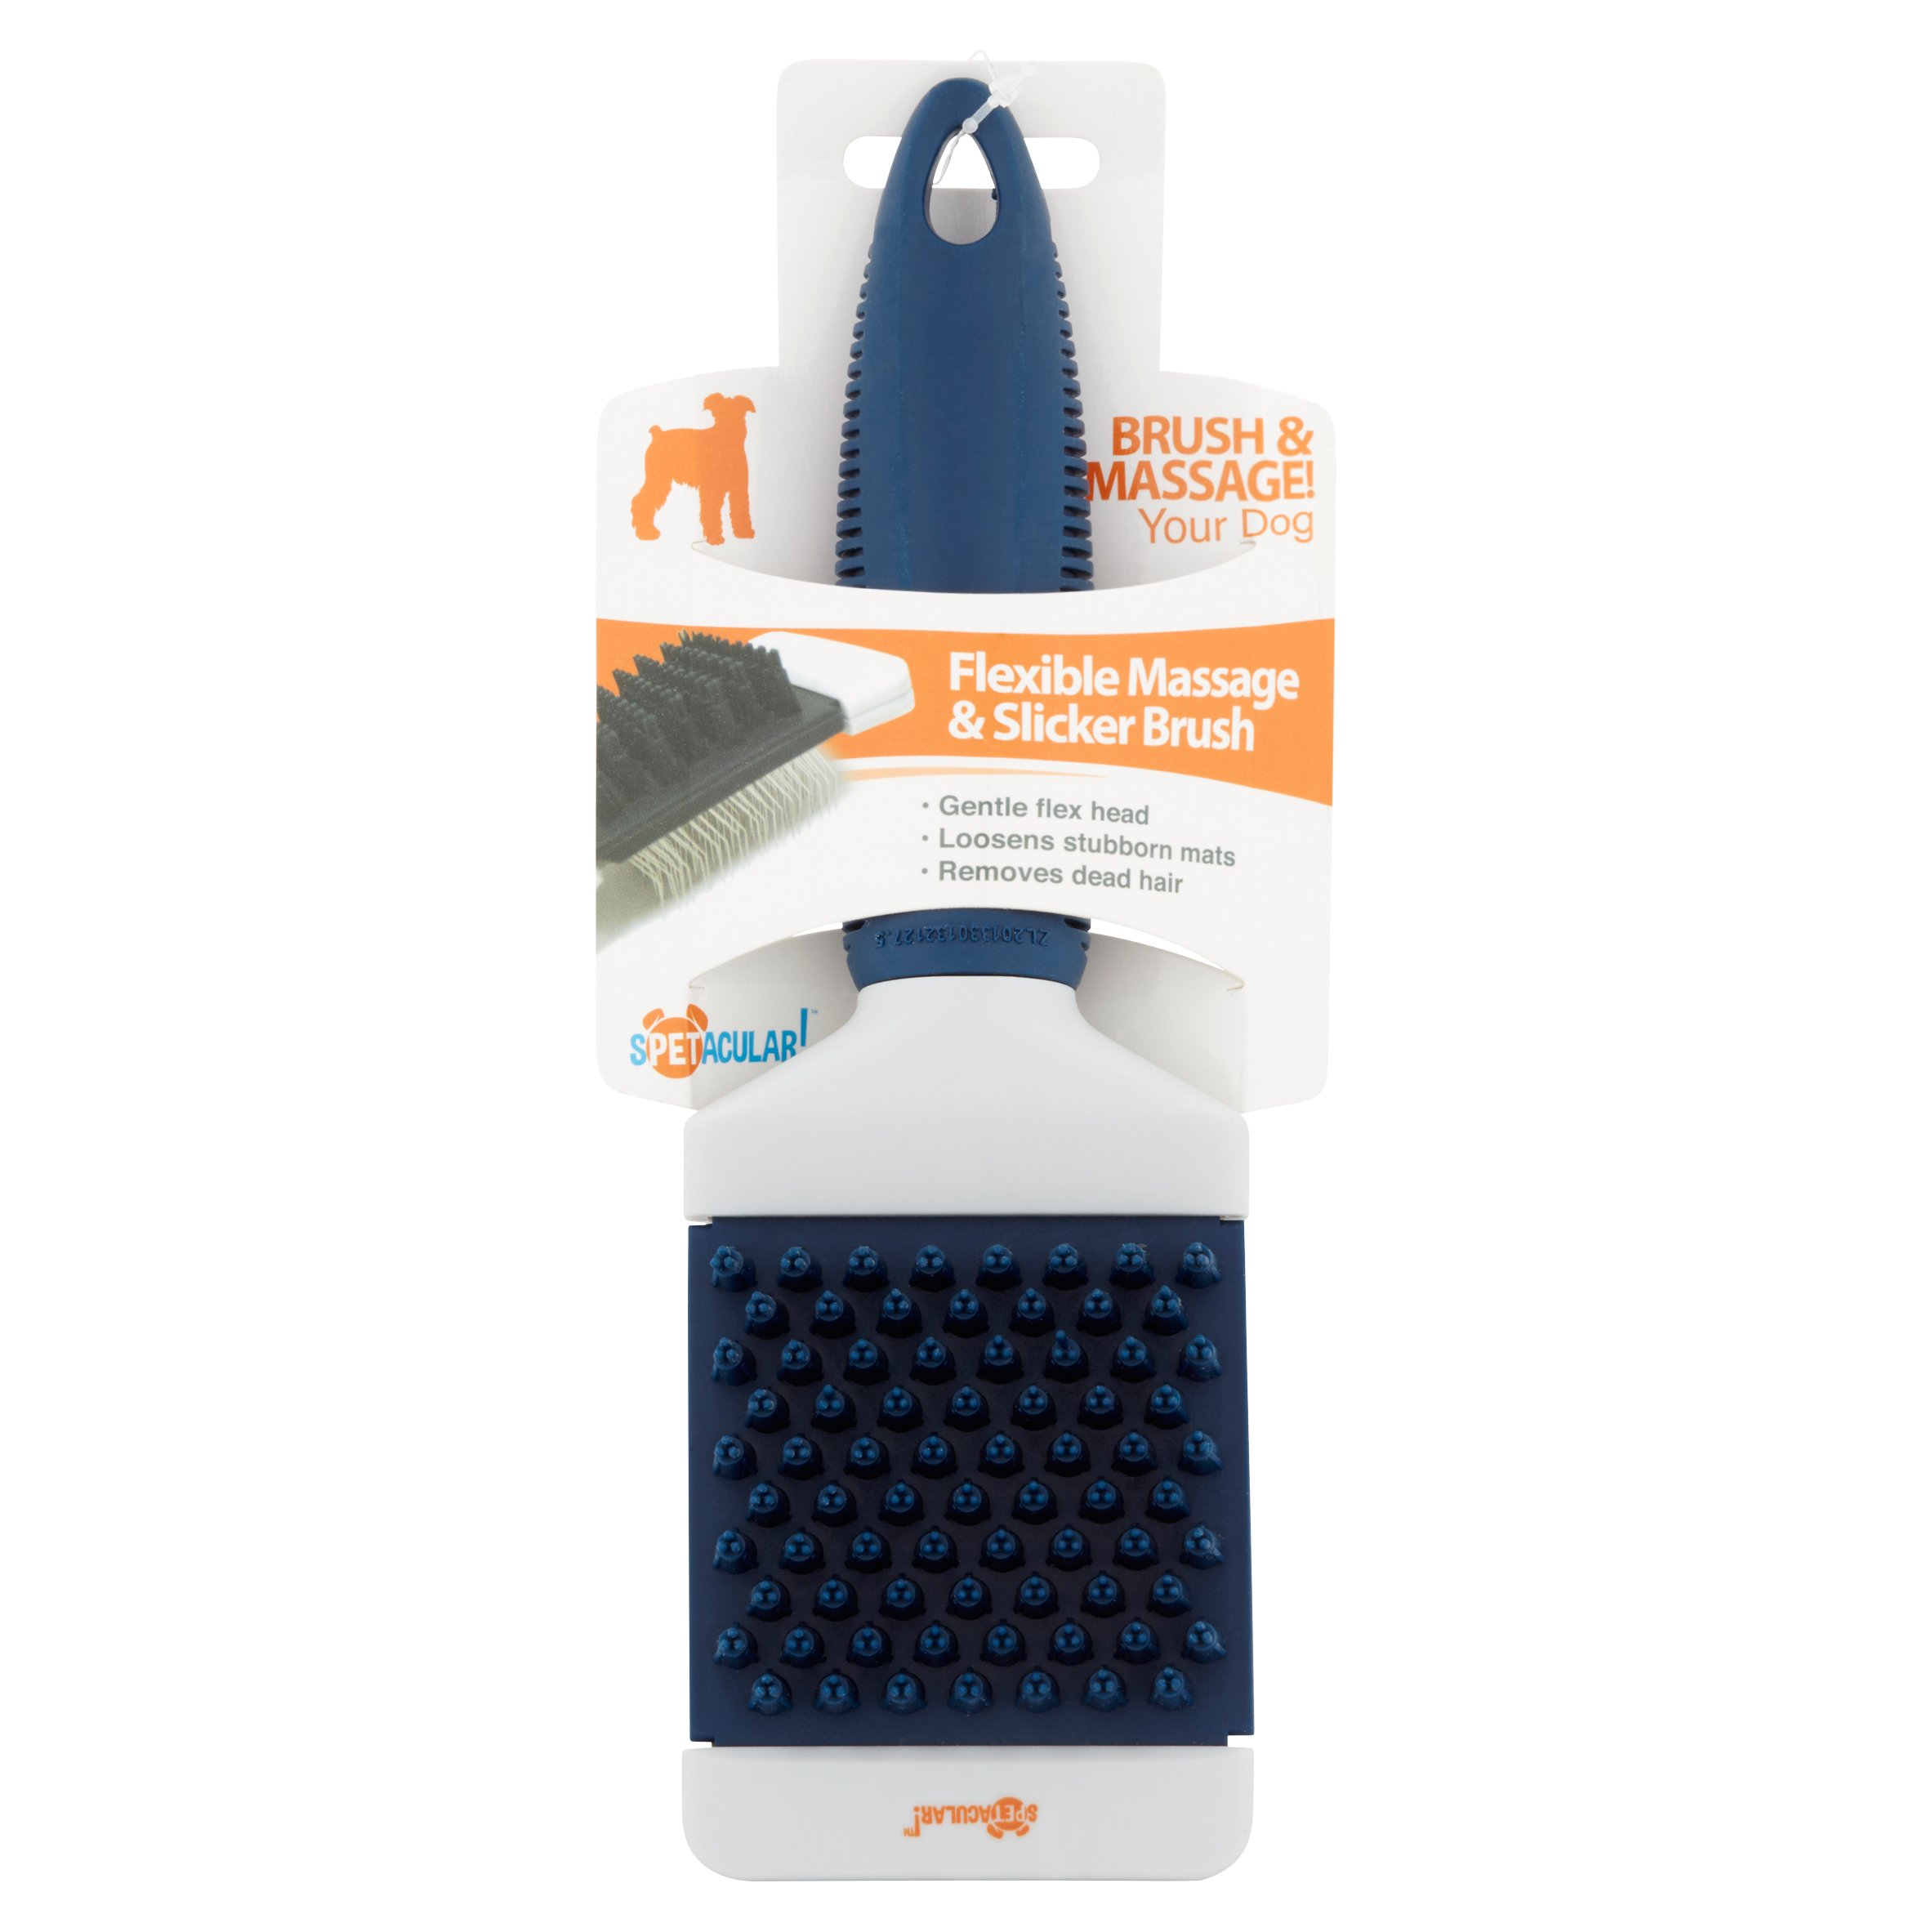 Spetacular! Flexible Massage & Slicker Brush